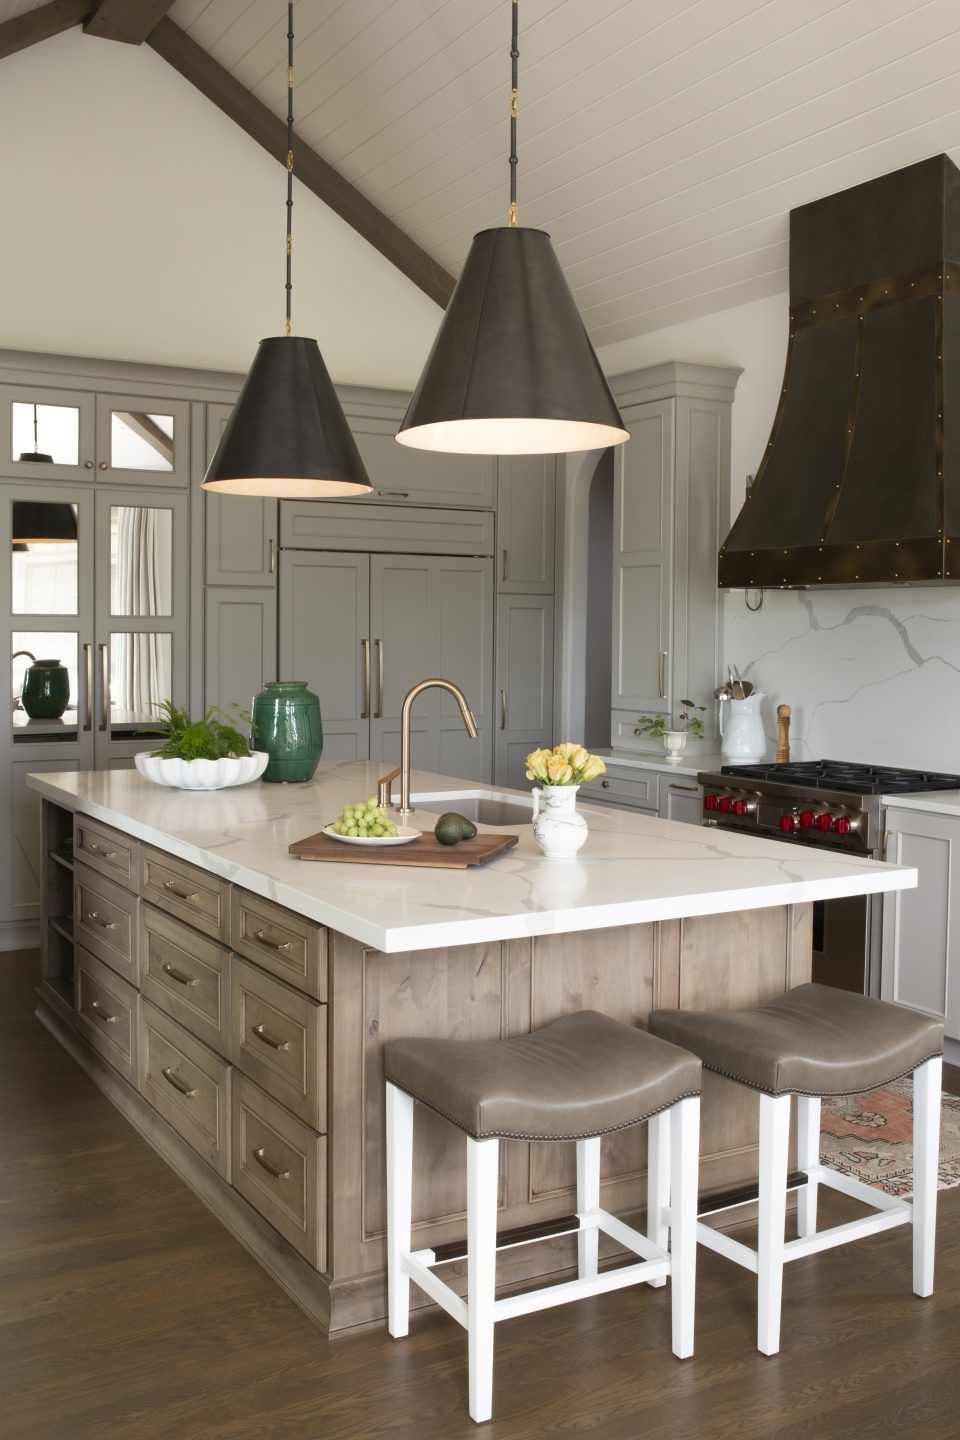 European Kitchens Air Vent For Kitchen Sink With Staingrade Island And Panted Cabinetry Design By R Cartwright